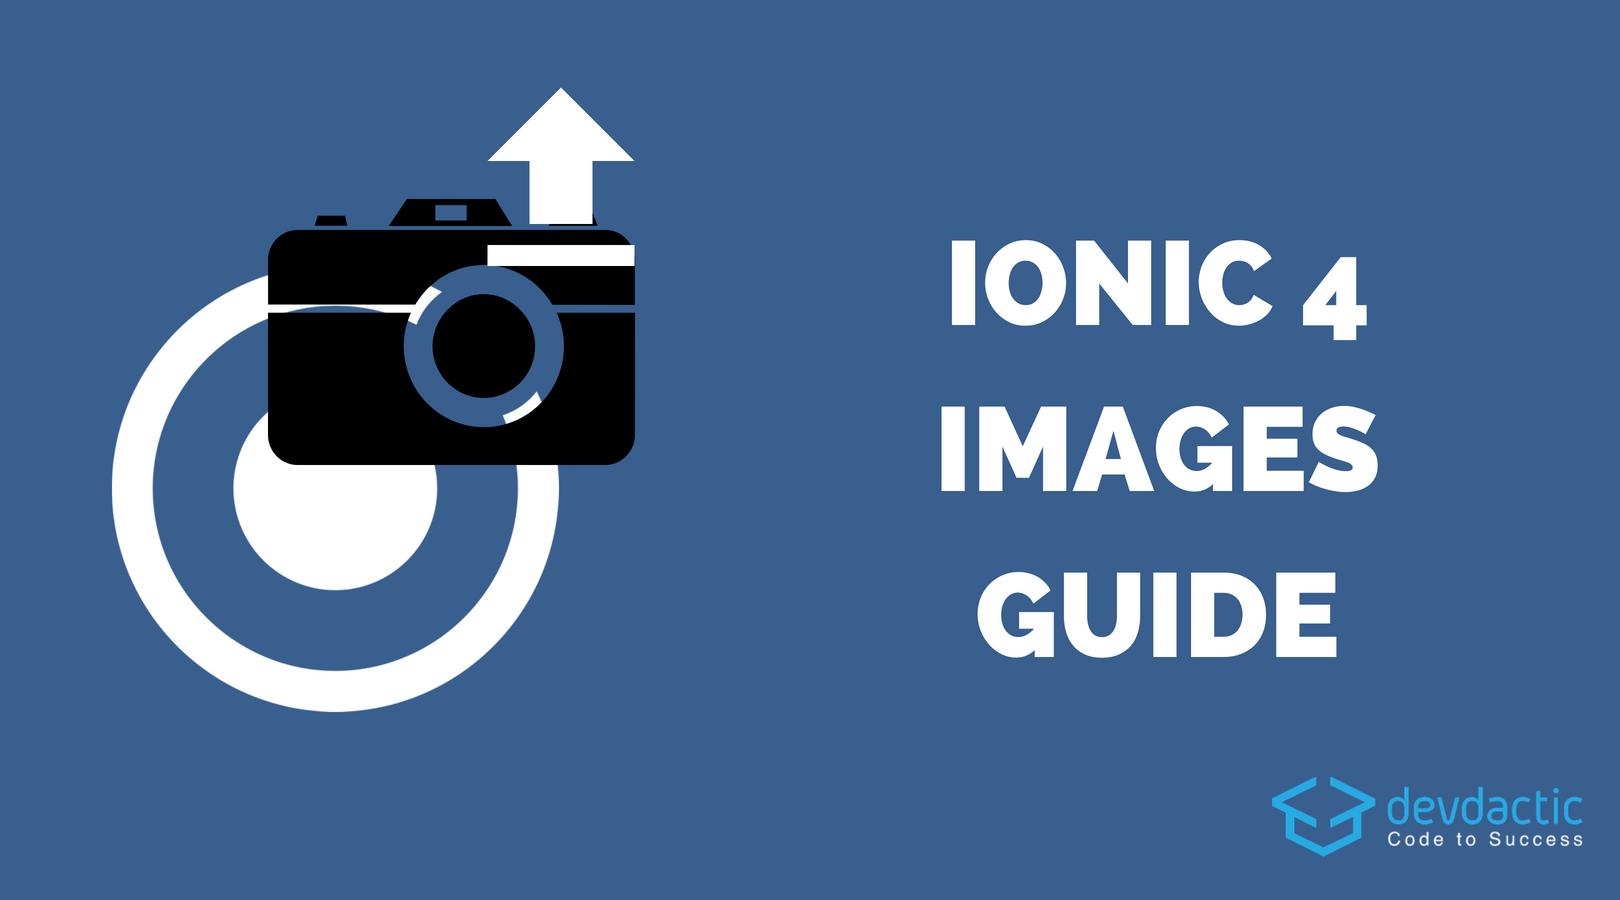 The Ionic 4 Images Guide (Capture, Store & Upload with POST